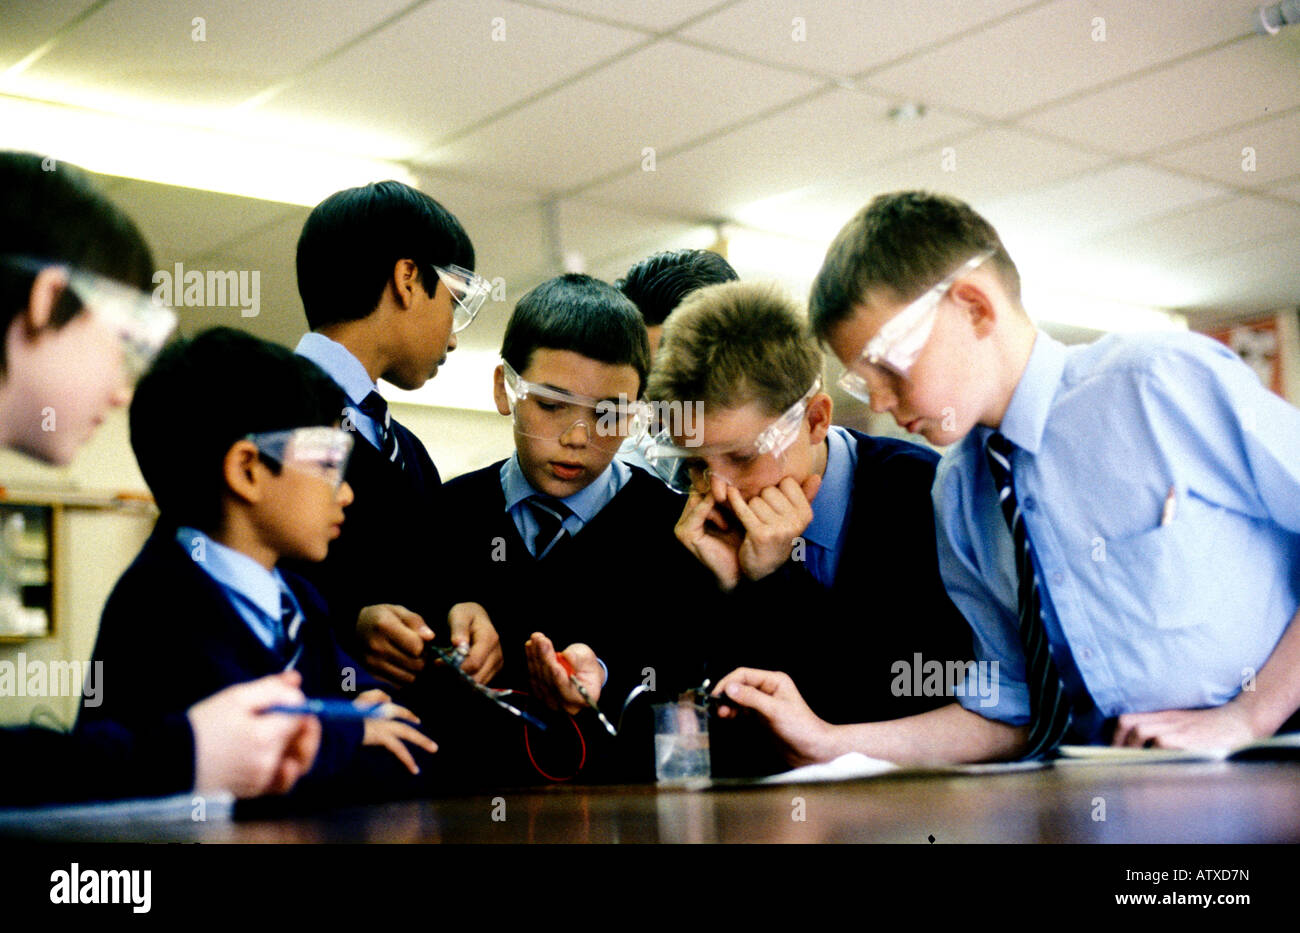 Secondary school children performing a science experiment at a CTC school in South London - Stock Image